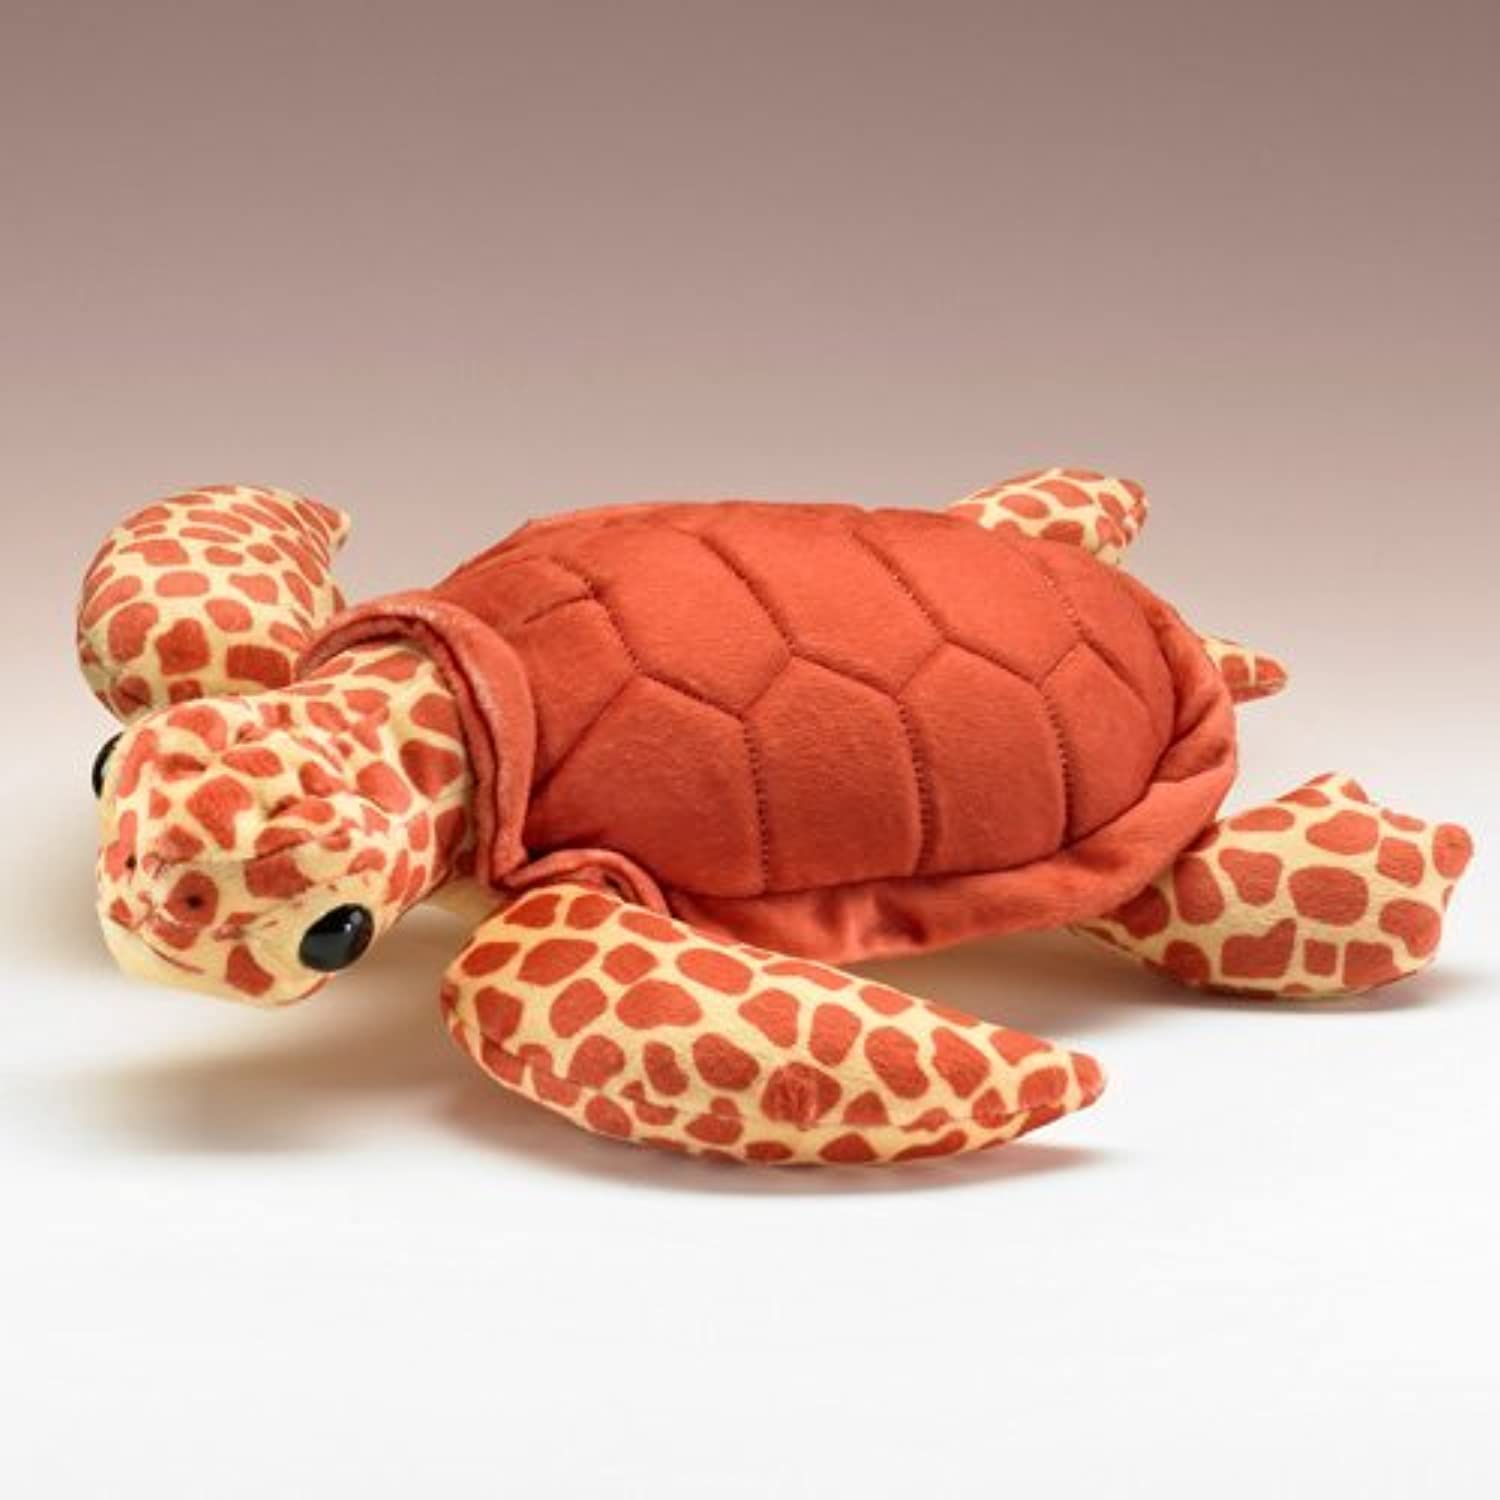 barato y de alta calidad Loggerhead Turtle Stuffed Animal Plush Juguete Juguete Juguete 13 L by Wildlife Artists  mejor servicio